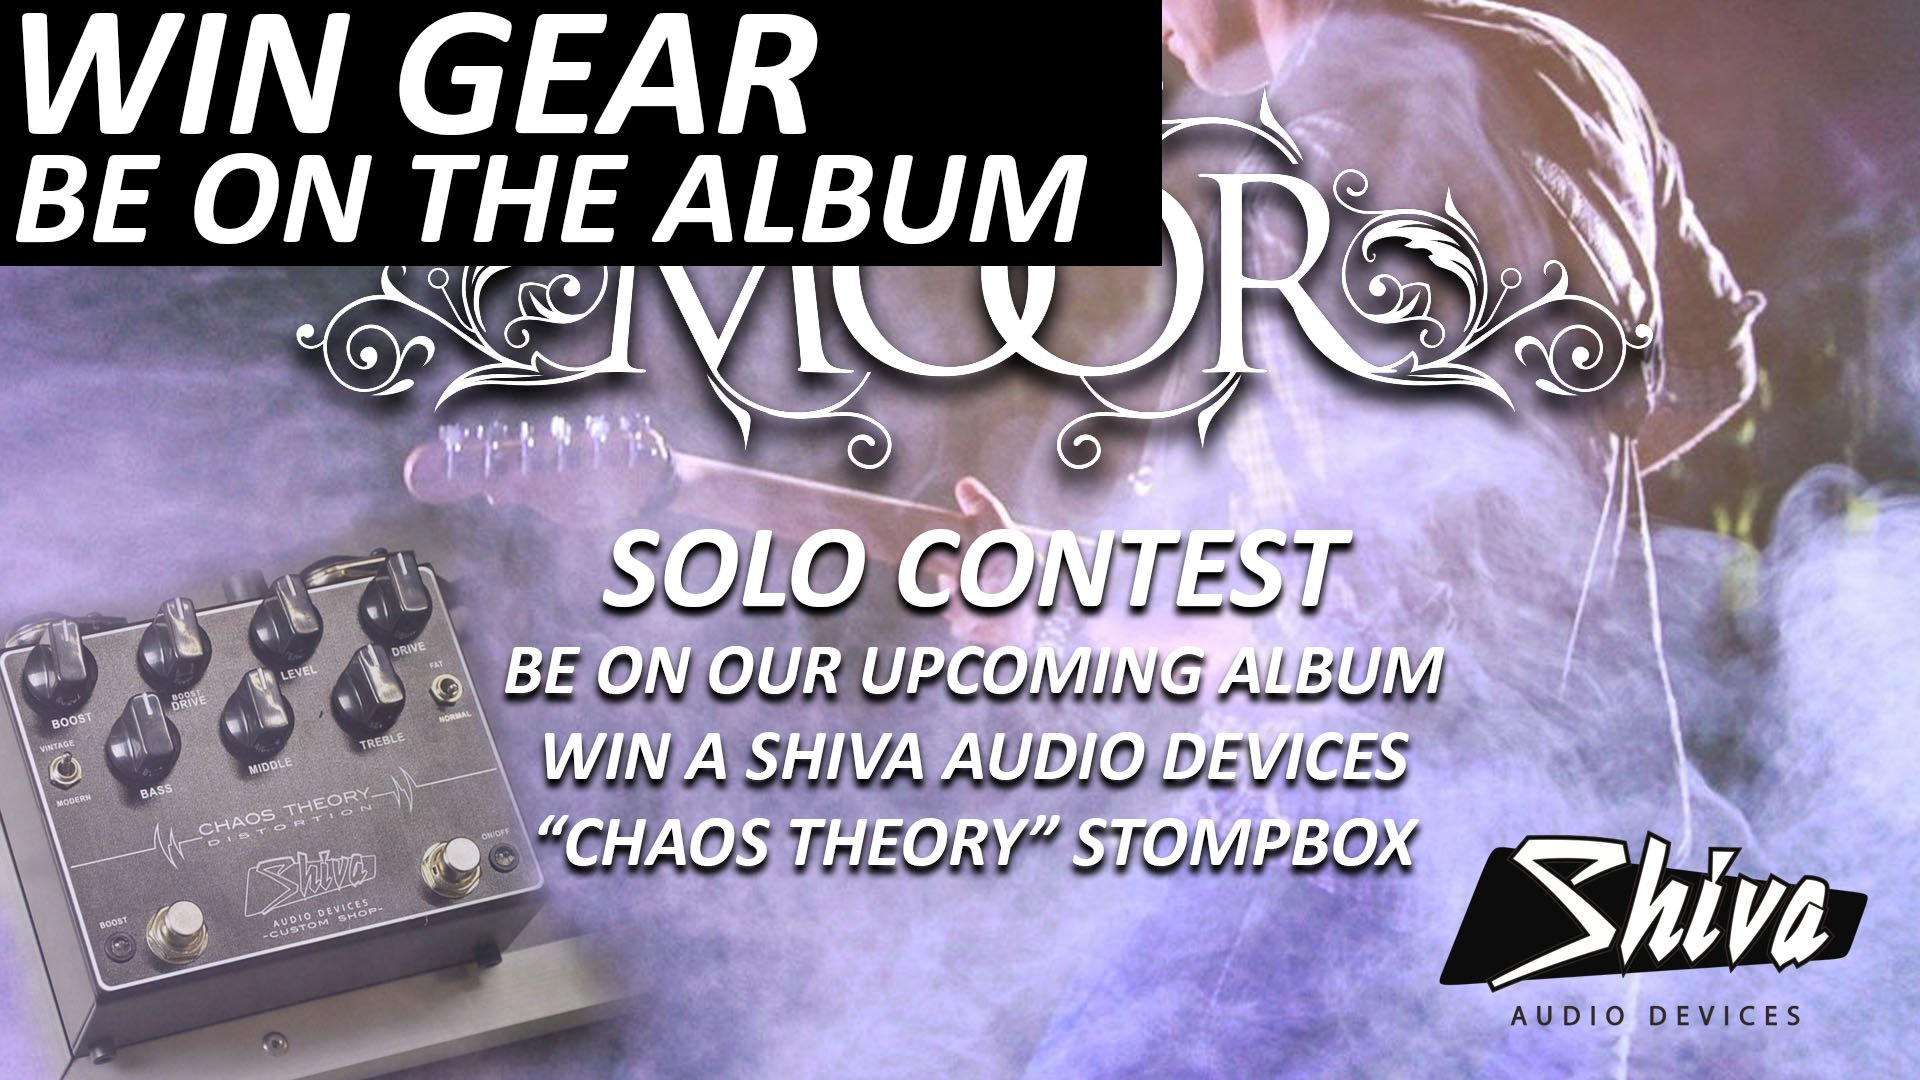 The Moor Solo Contest feat. Shiva Audio Devices